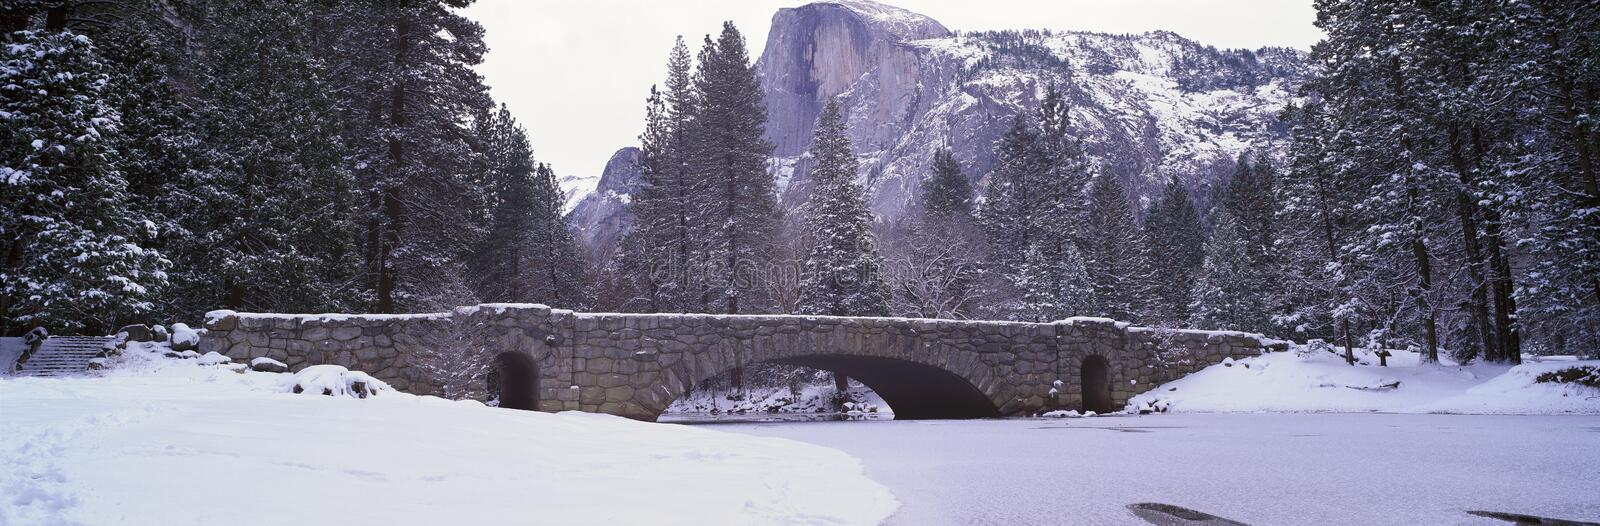 Half Dome and Merced River In Winter stock photo